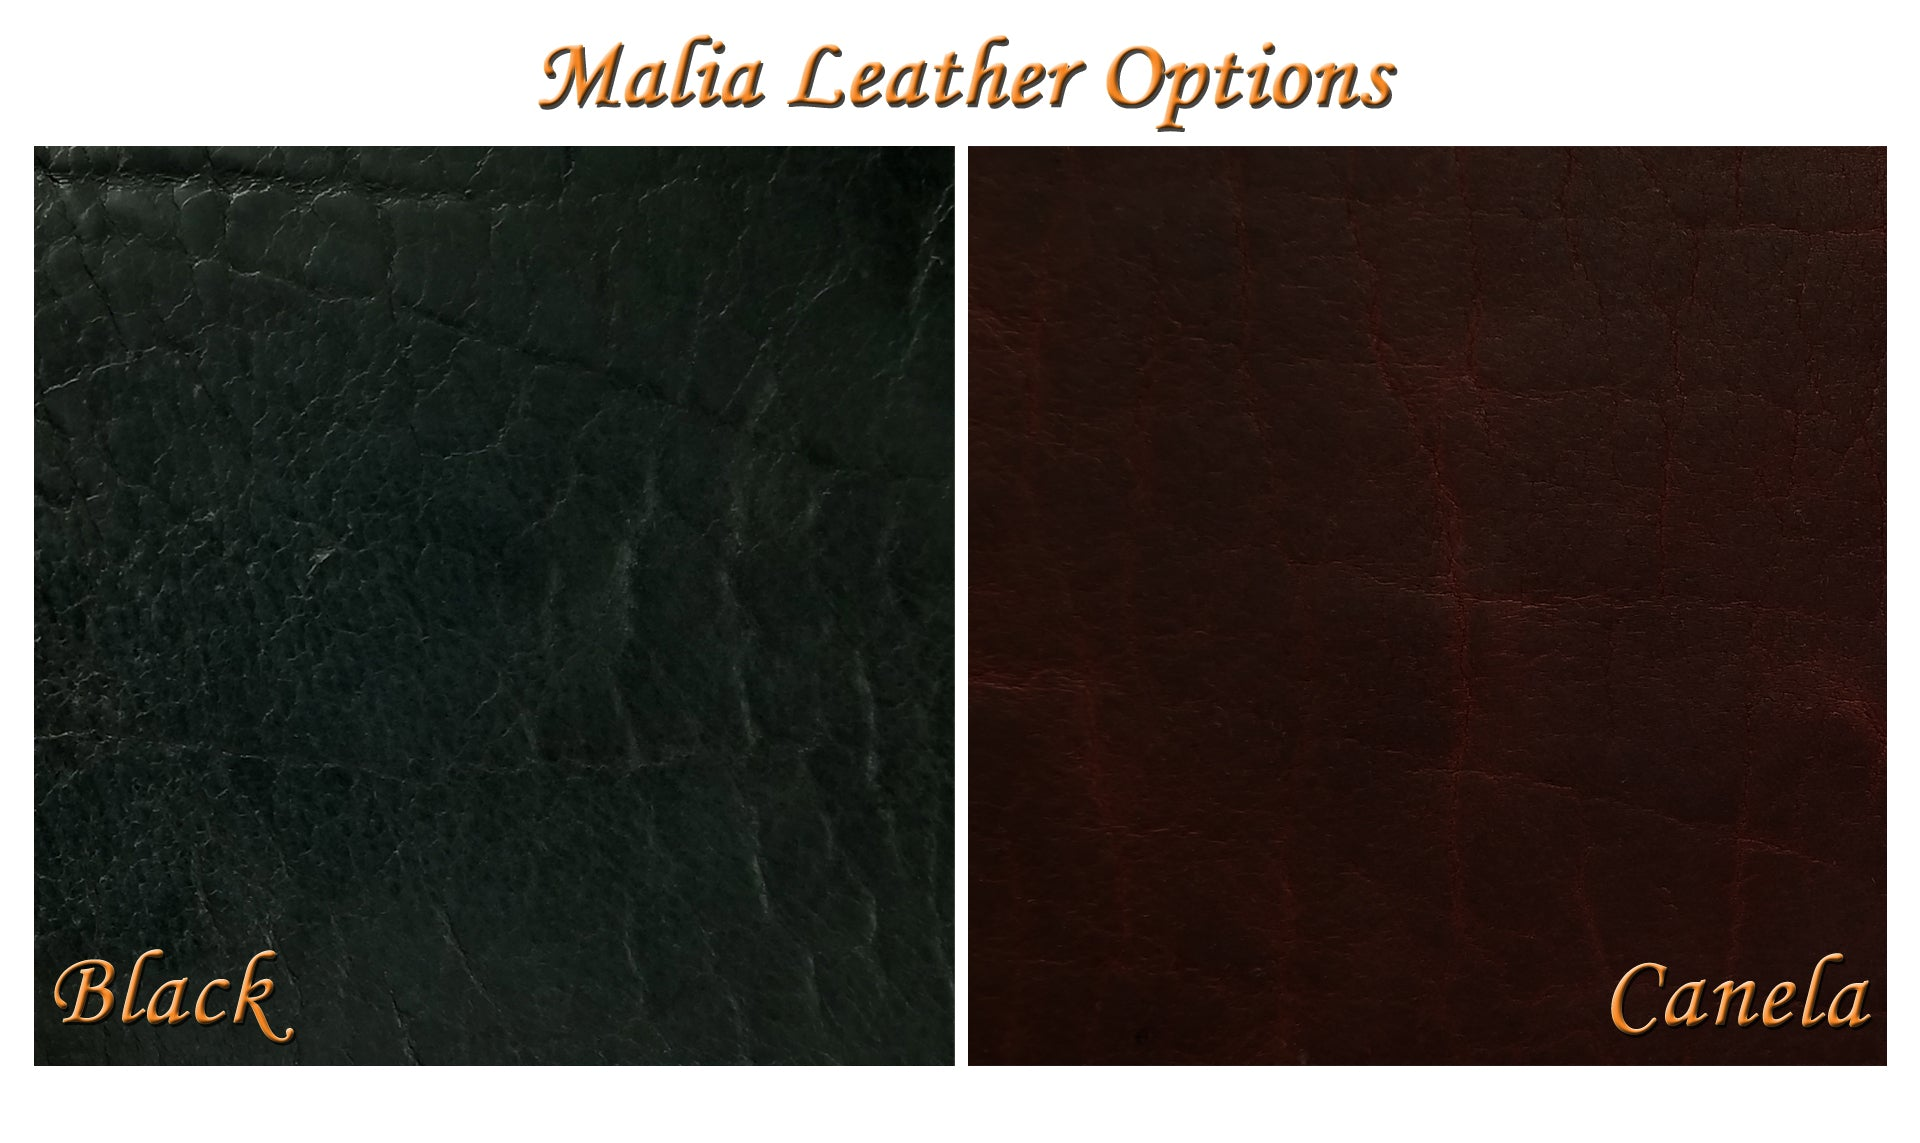 Malia Navajo bison leather clutch tote bag carry all color choices